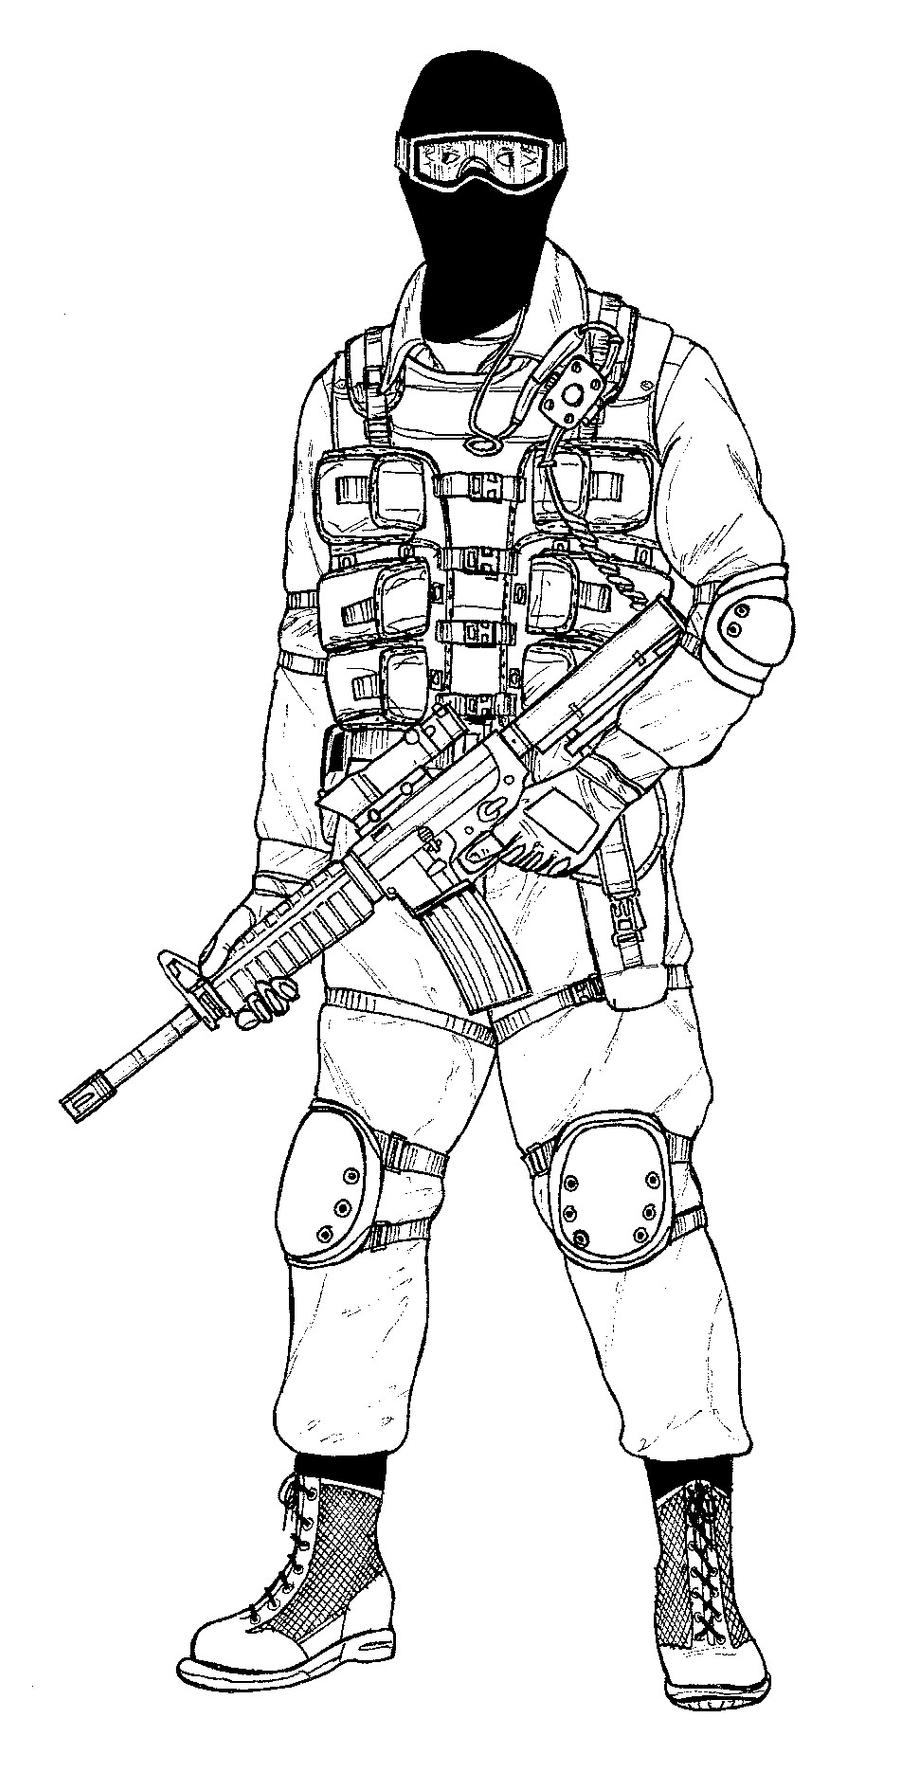 Generic SWAT Operator by linseed on DeviantArt